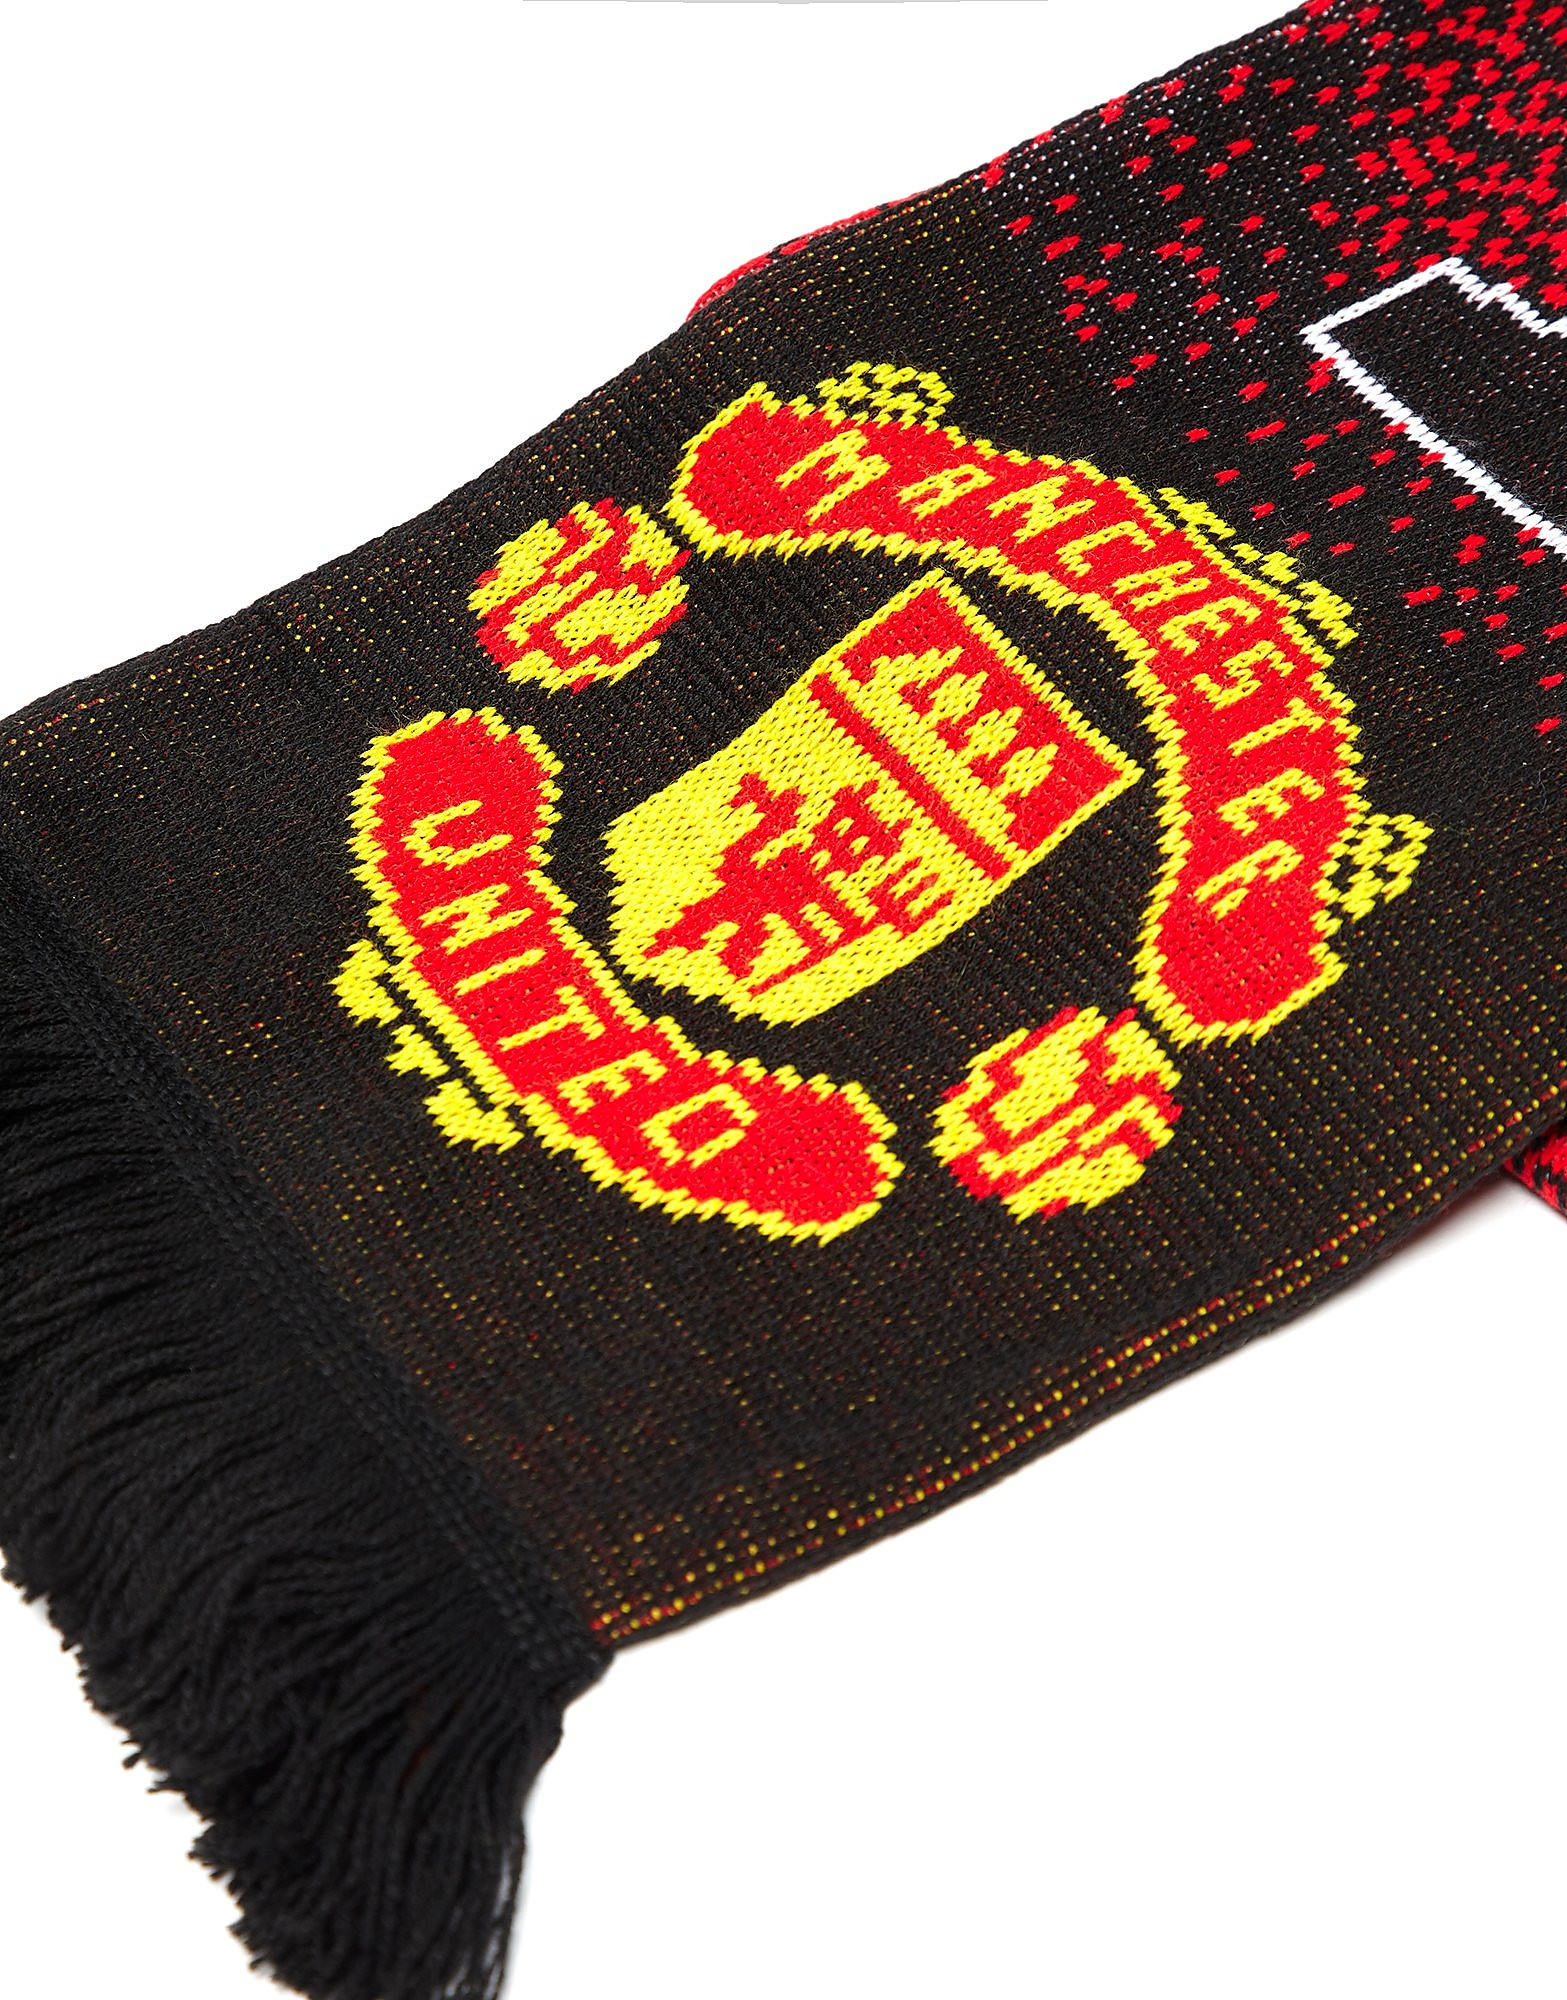 Brooks Jordan Manchester United FC Speckle Scarf